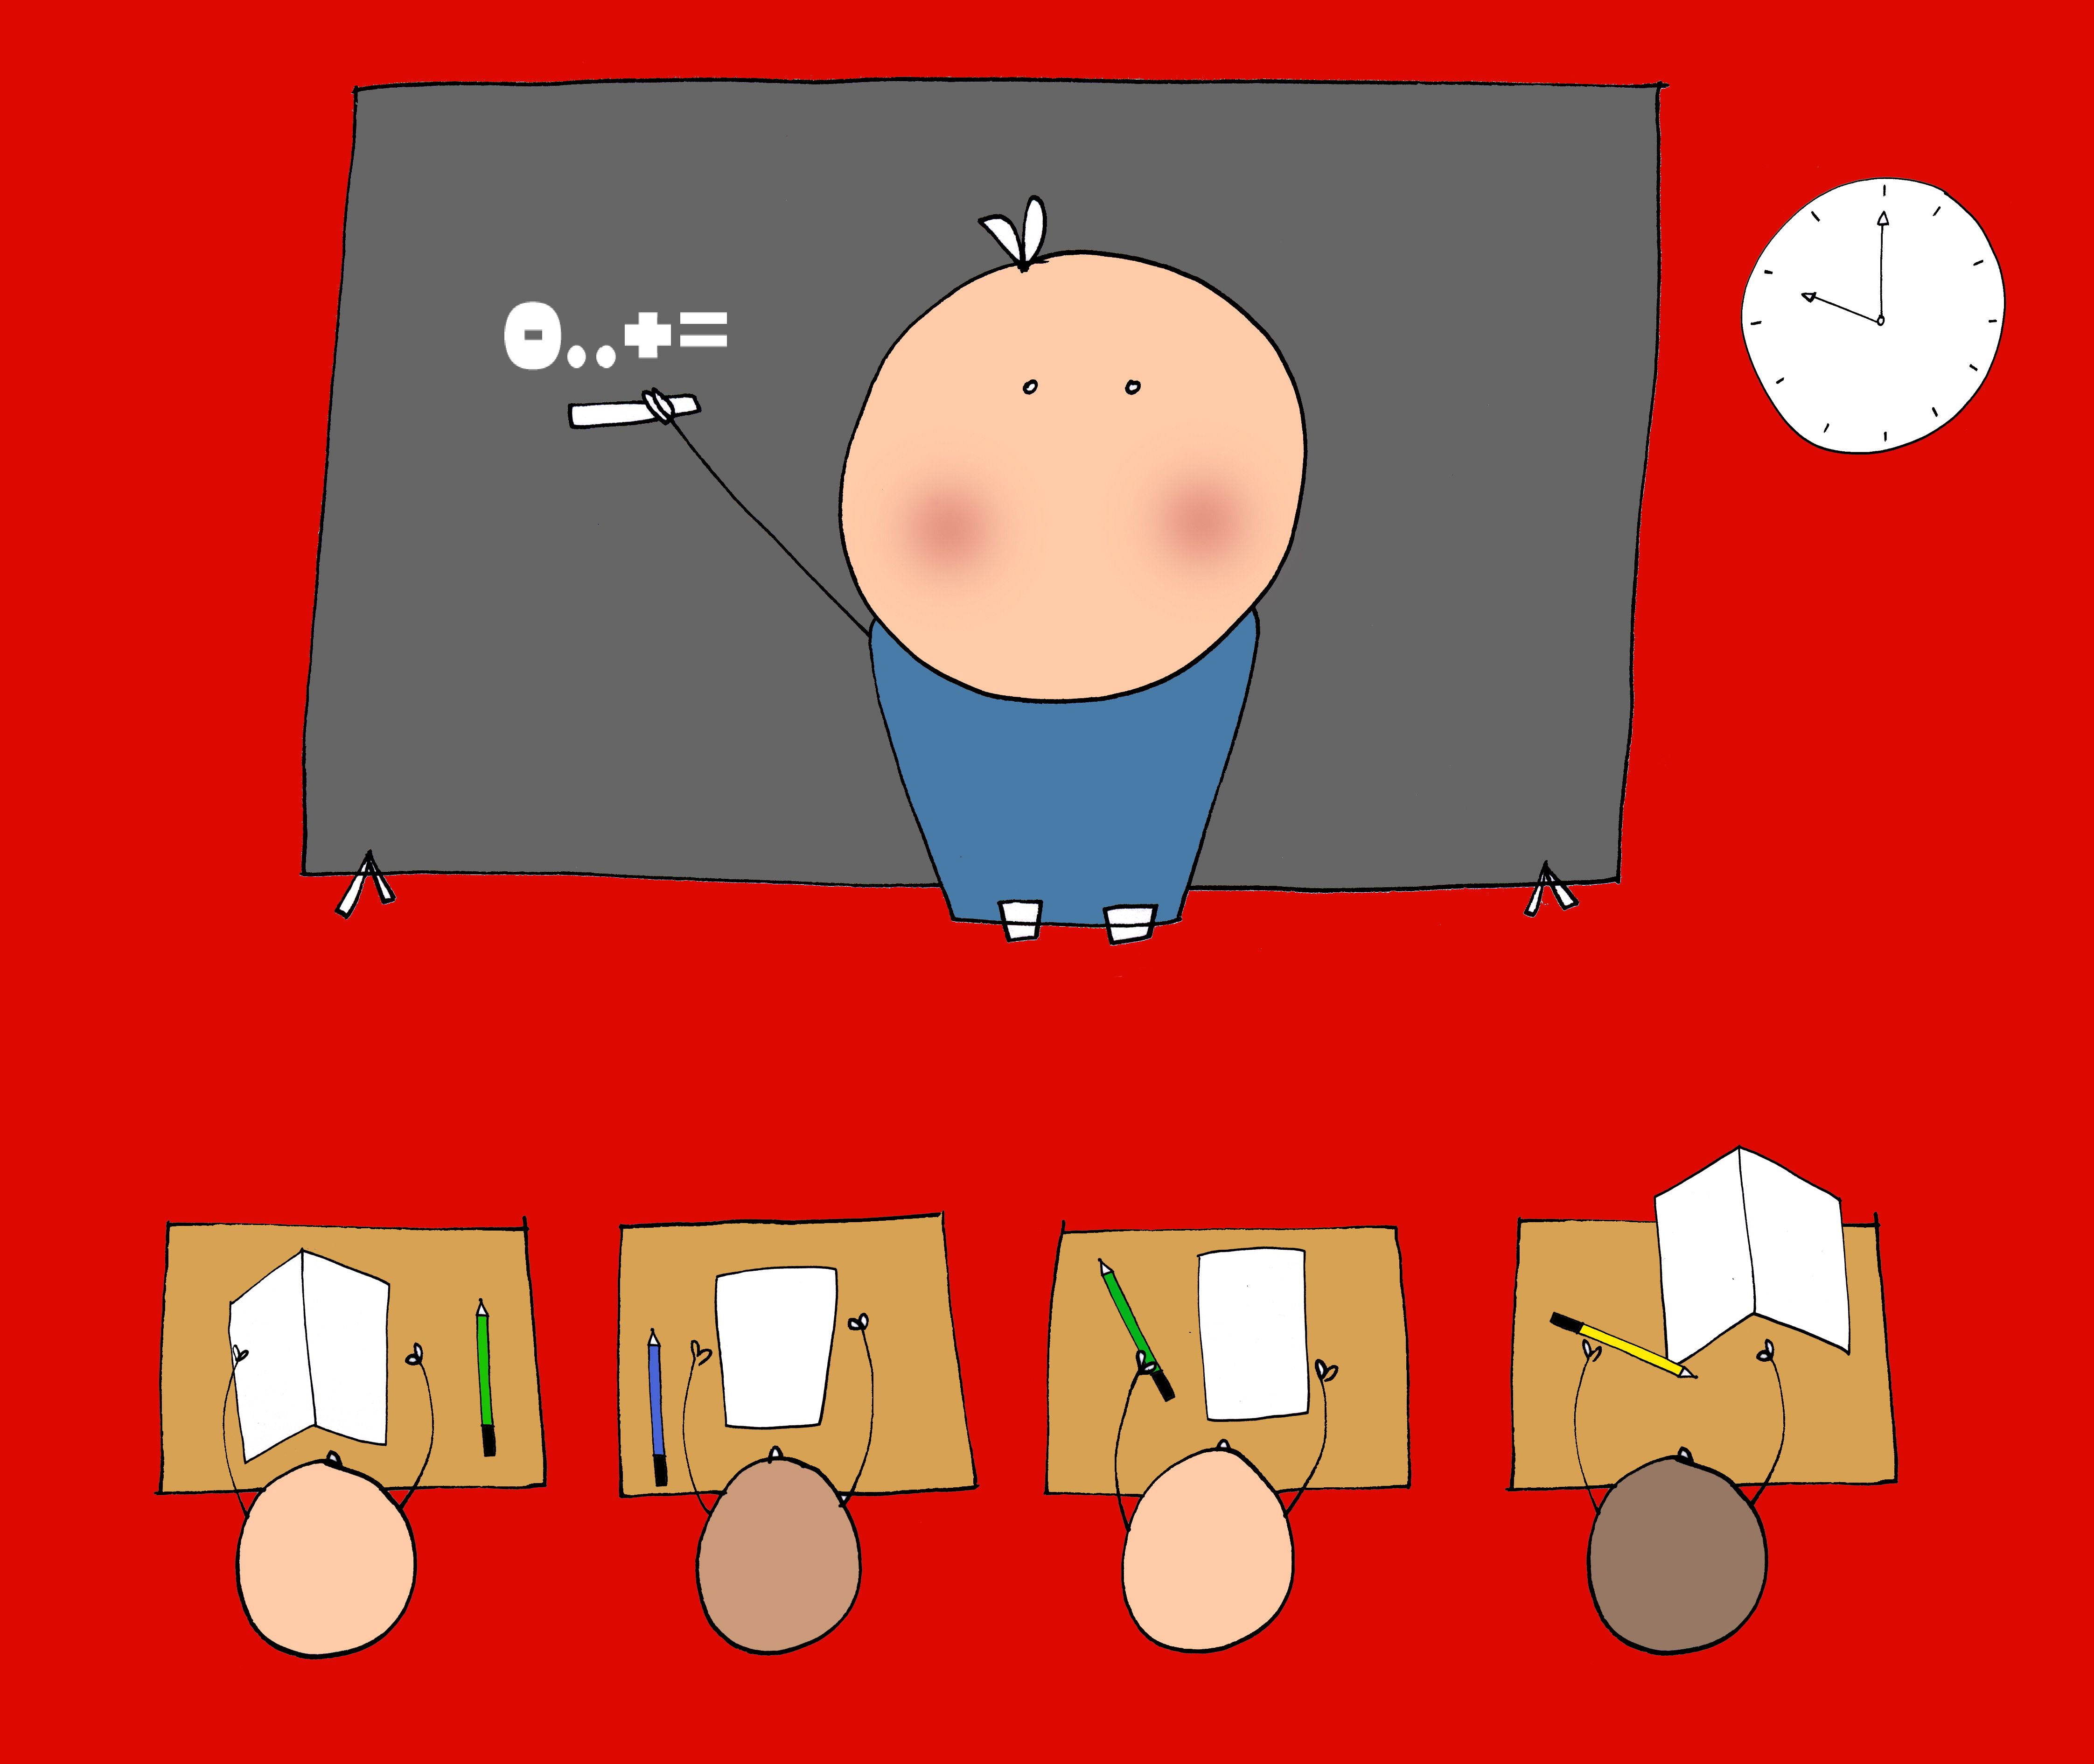 Simplifying Expressions Using Distributive Property